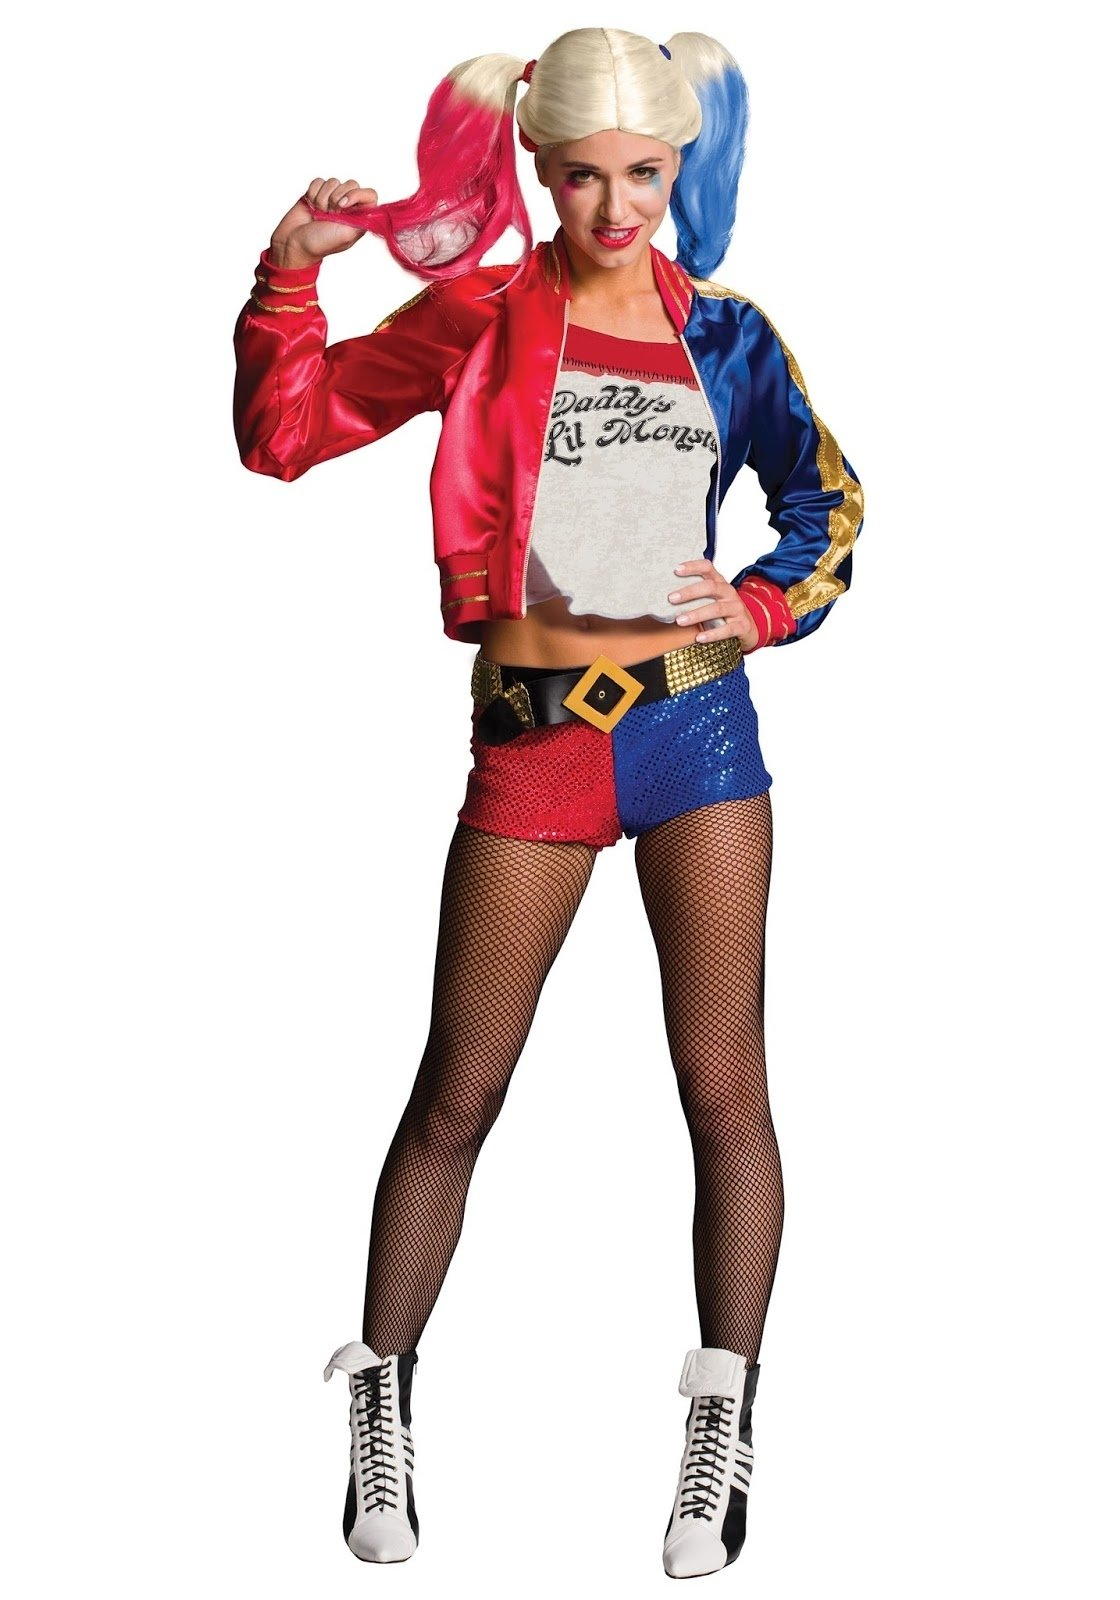 10 Lovable Cool Halloween Costume Ideas For Teenage Girls halloween costumes for teenage girls for halloween  sc 1 st  Unique Ideas 2018 & 10 Lovable Cool Halloween Costume Ideas For Teenage Girls